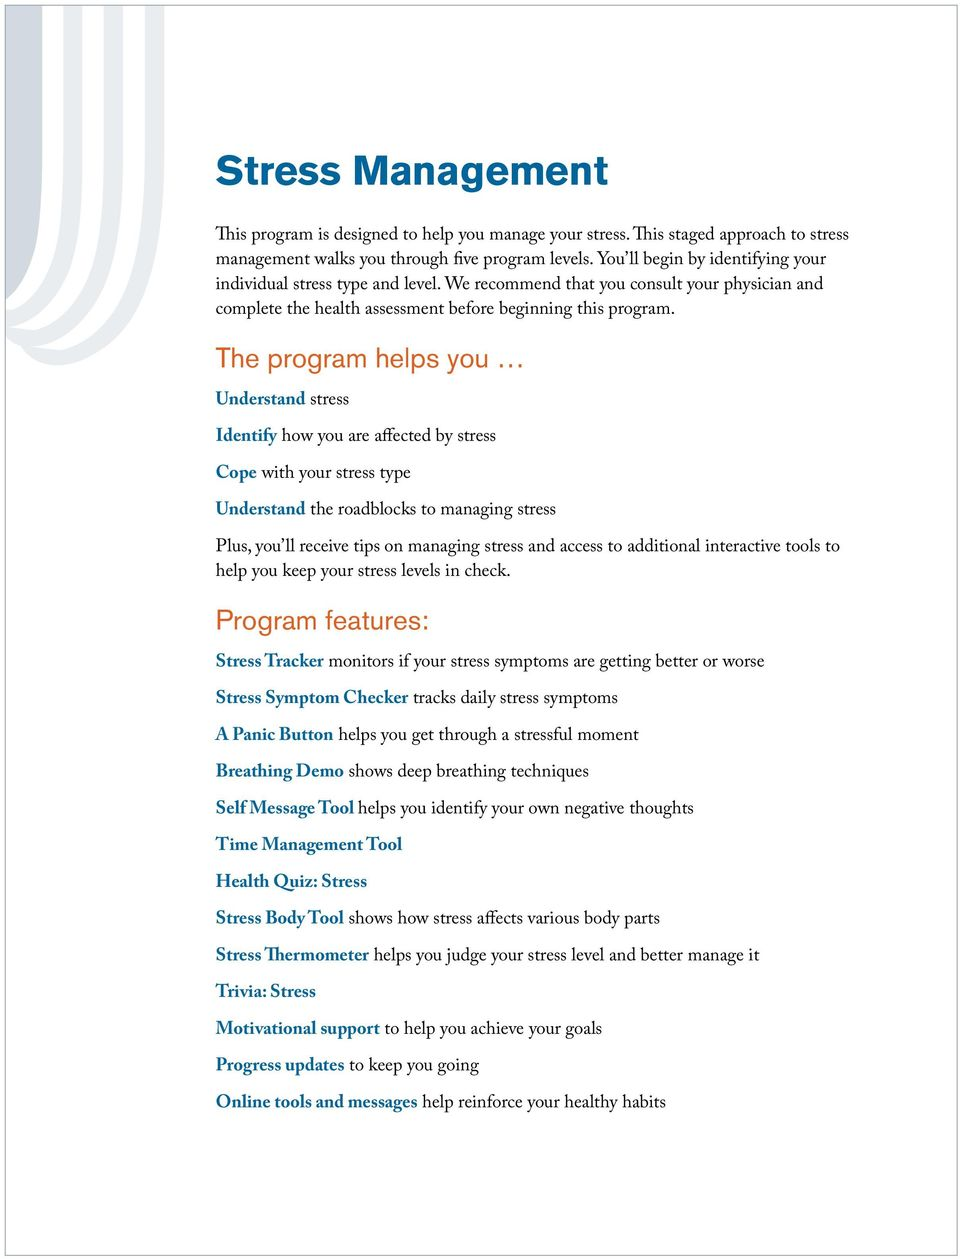 The program helps you Understand stress Identify how you are affected by stress Cope with your stress type Understand the roadblocks to managing stress Plus, you ll receive tips on managing stress